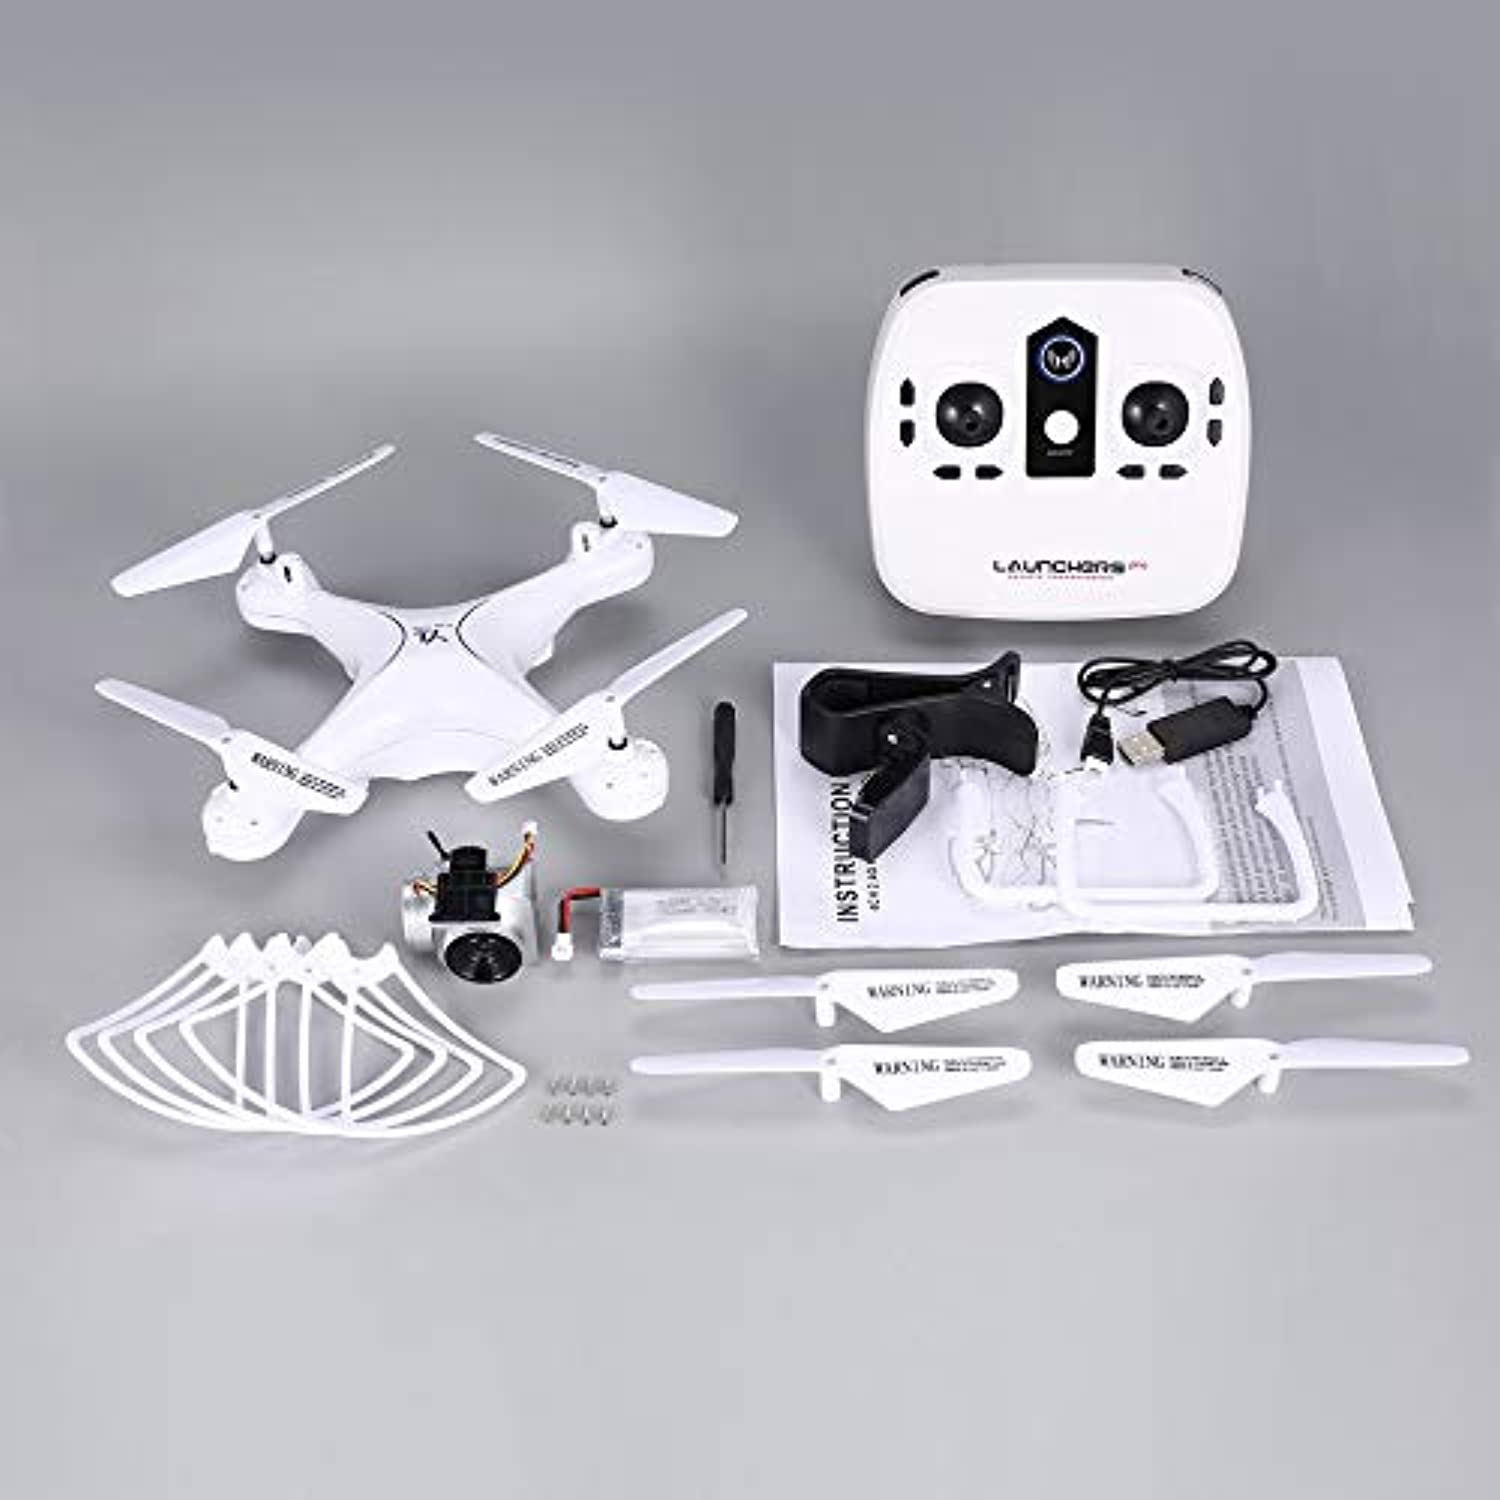 Fdghhgjgtkuyiuy S28 RC Drone 2.4G Selfie Quadcopter Aircraft with 1080P HD Wifi FPV Camera Altitude Hold Headless 3D Flip 18min Long Flight